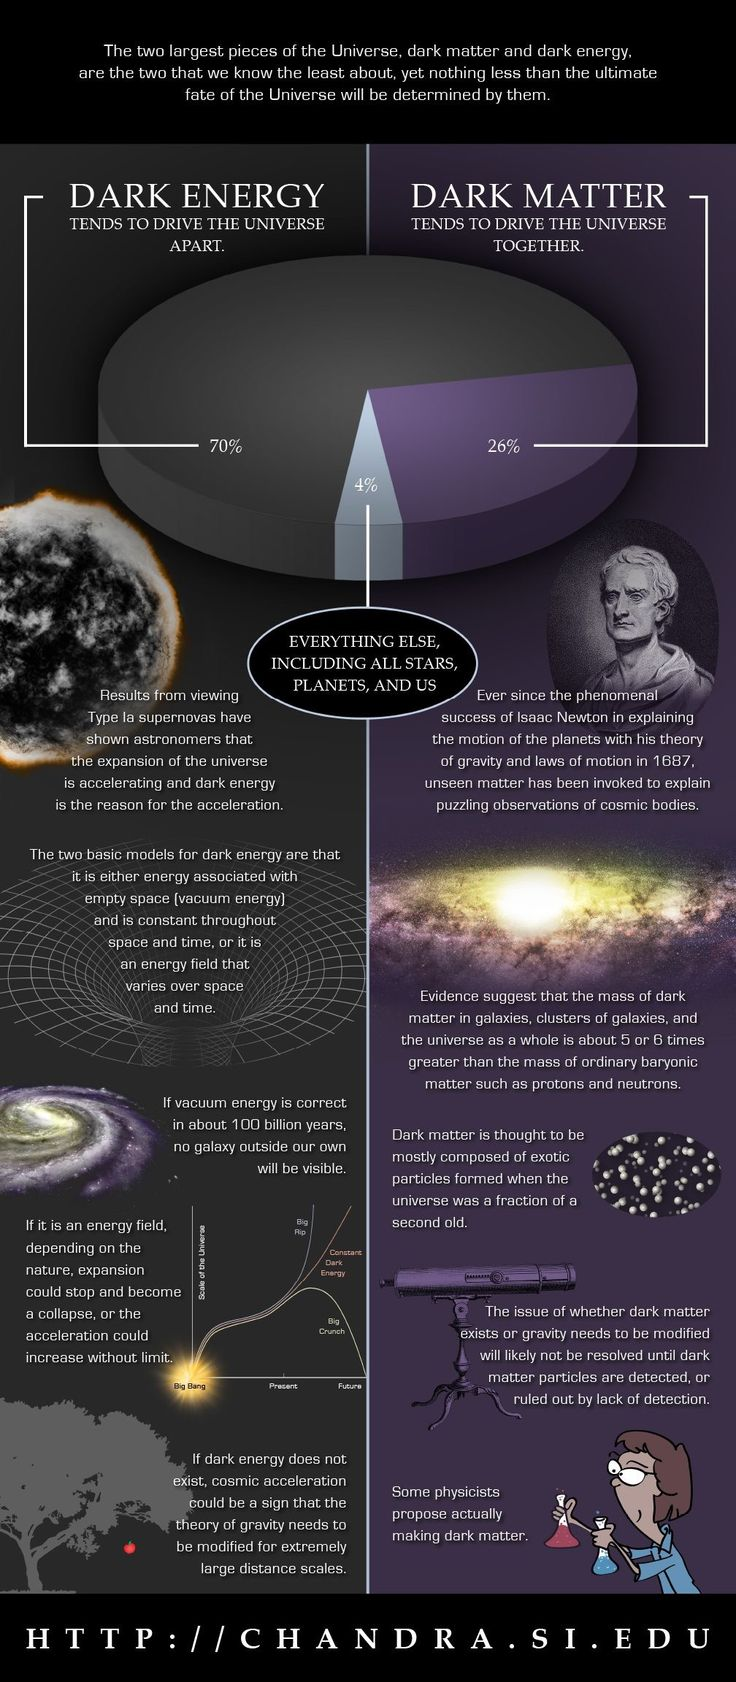 Scientists puzzled for decades as to why their equations did not explain the observed universe and why the infinitesimally small scale did not match the astronomically large universe ? Then then factored in Dark matter and it's polar opposite Dark energy and then computer simulations make sense BUT it's all theory, since Dark material cannot be observed but its effect on visible celestial bodies confirm their existence through billions of pieces of data extrapolated by astronomers number…